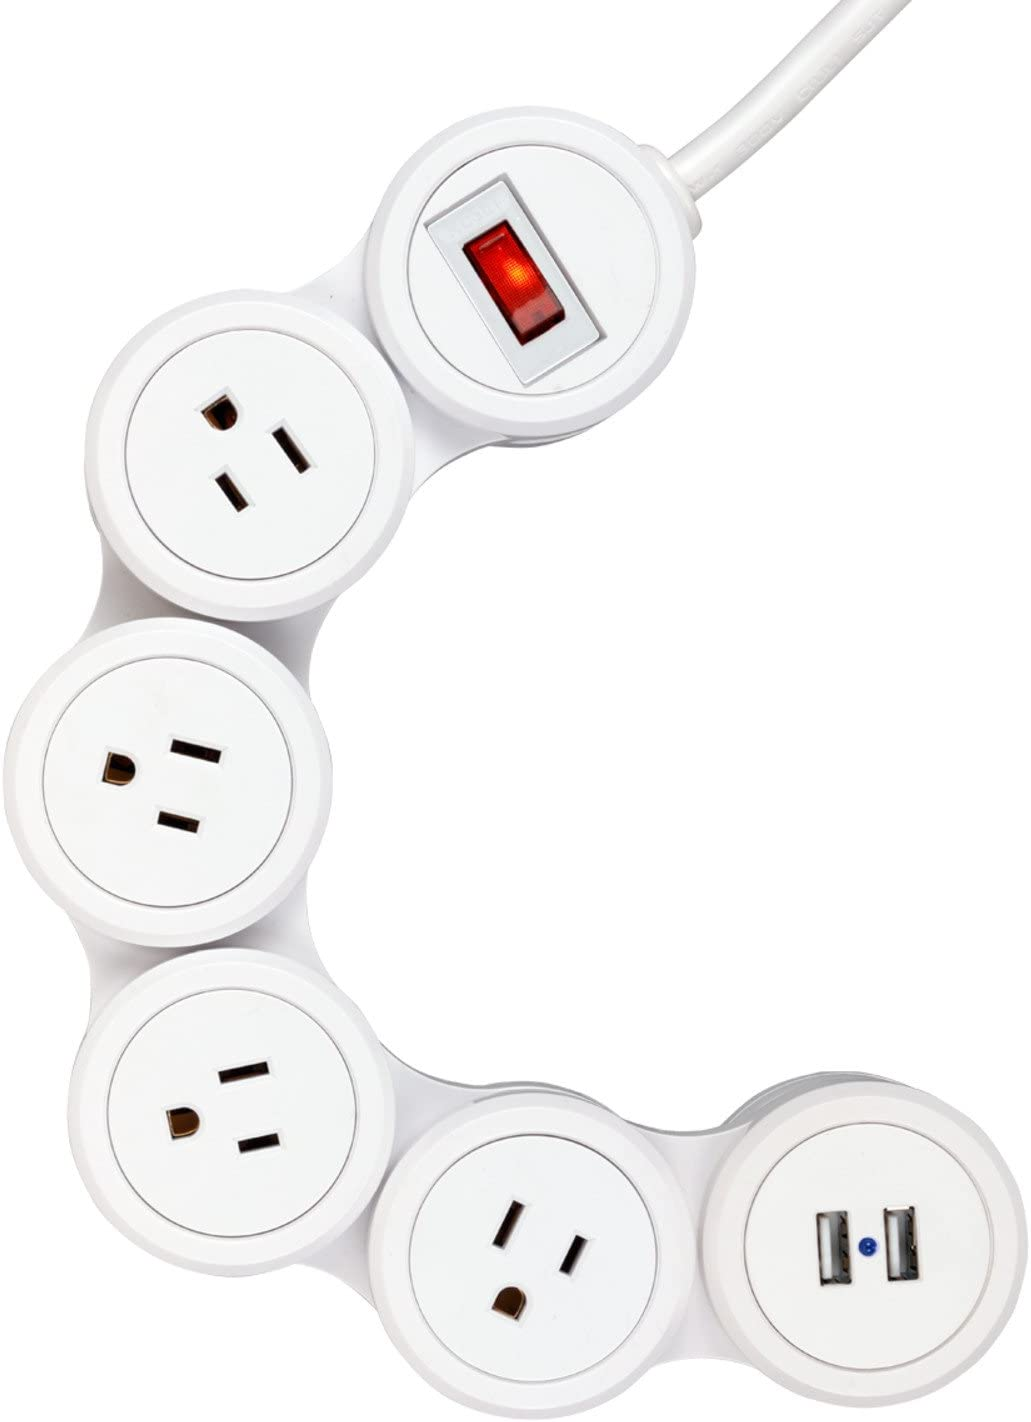 Chicago Mall Globe Electric Surge Protector Strip 3-Pin Special price for a limited time Grounded Outlets 4X